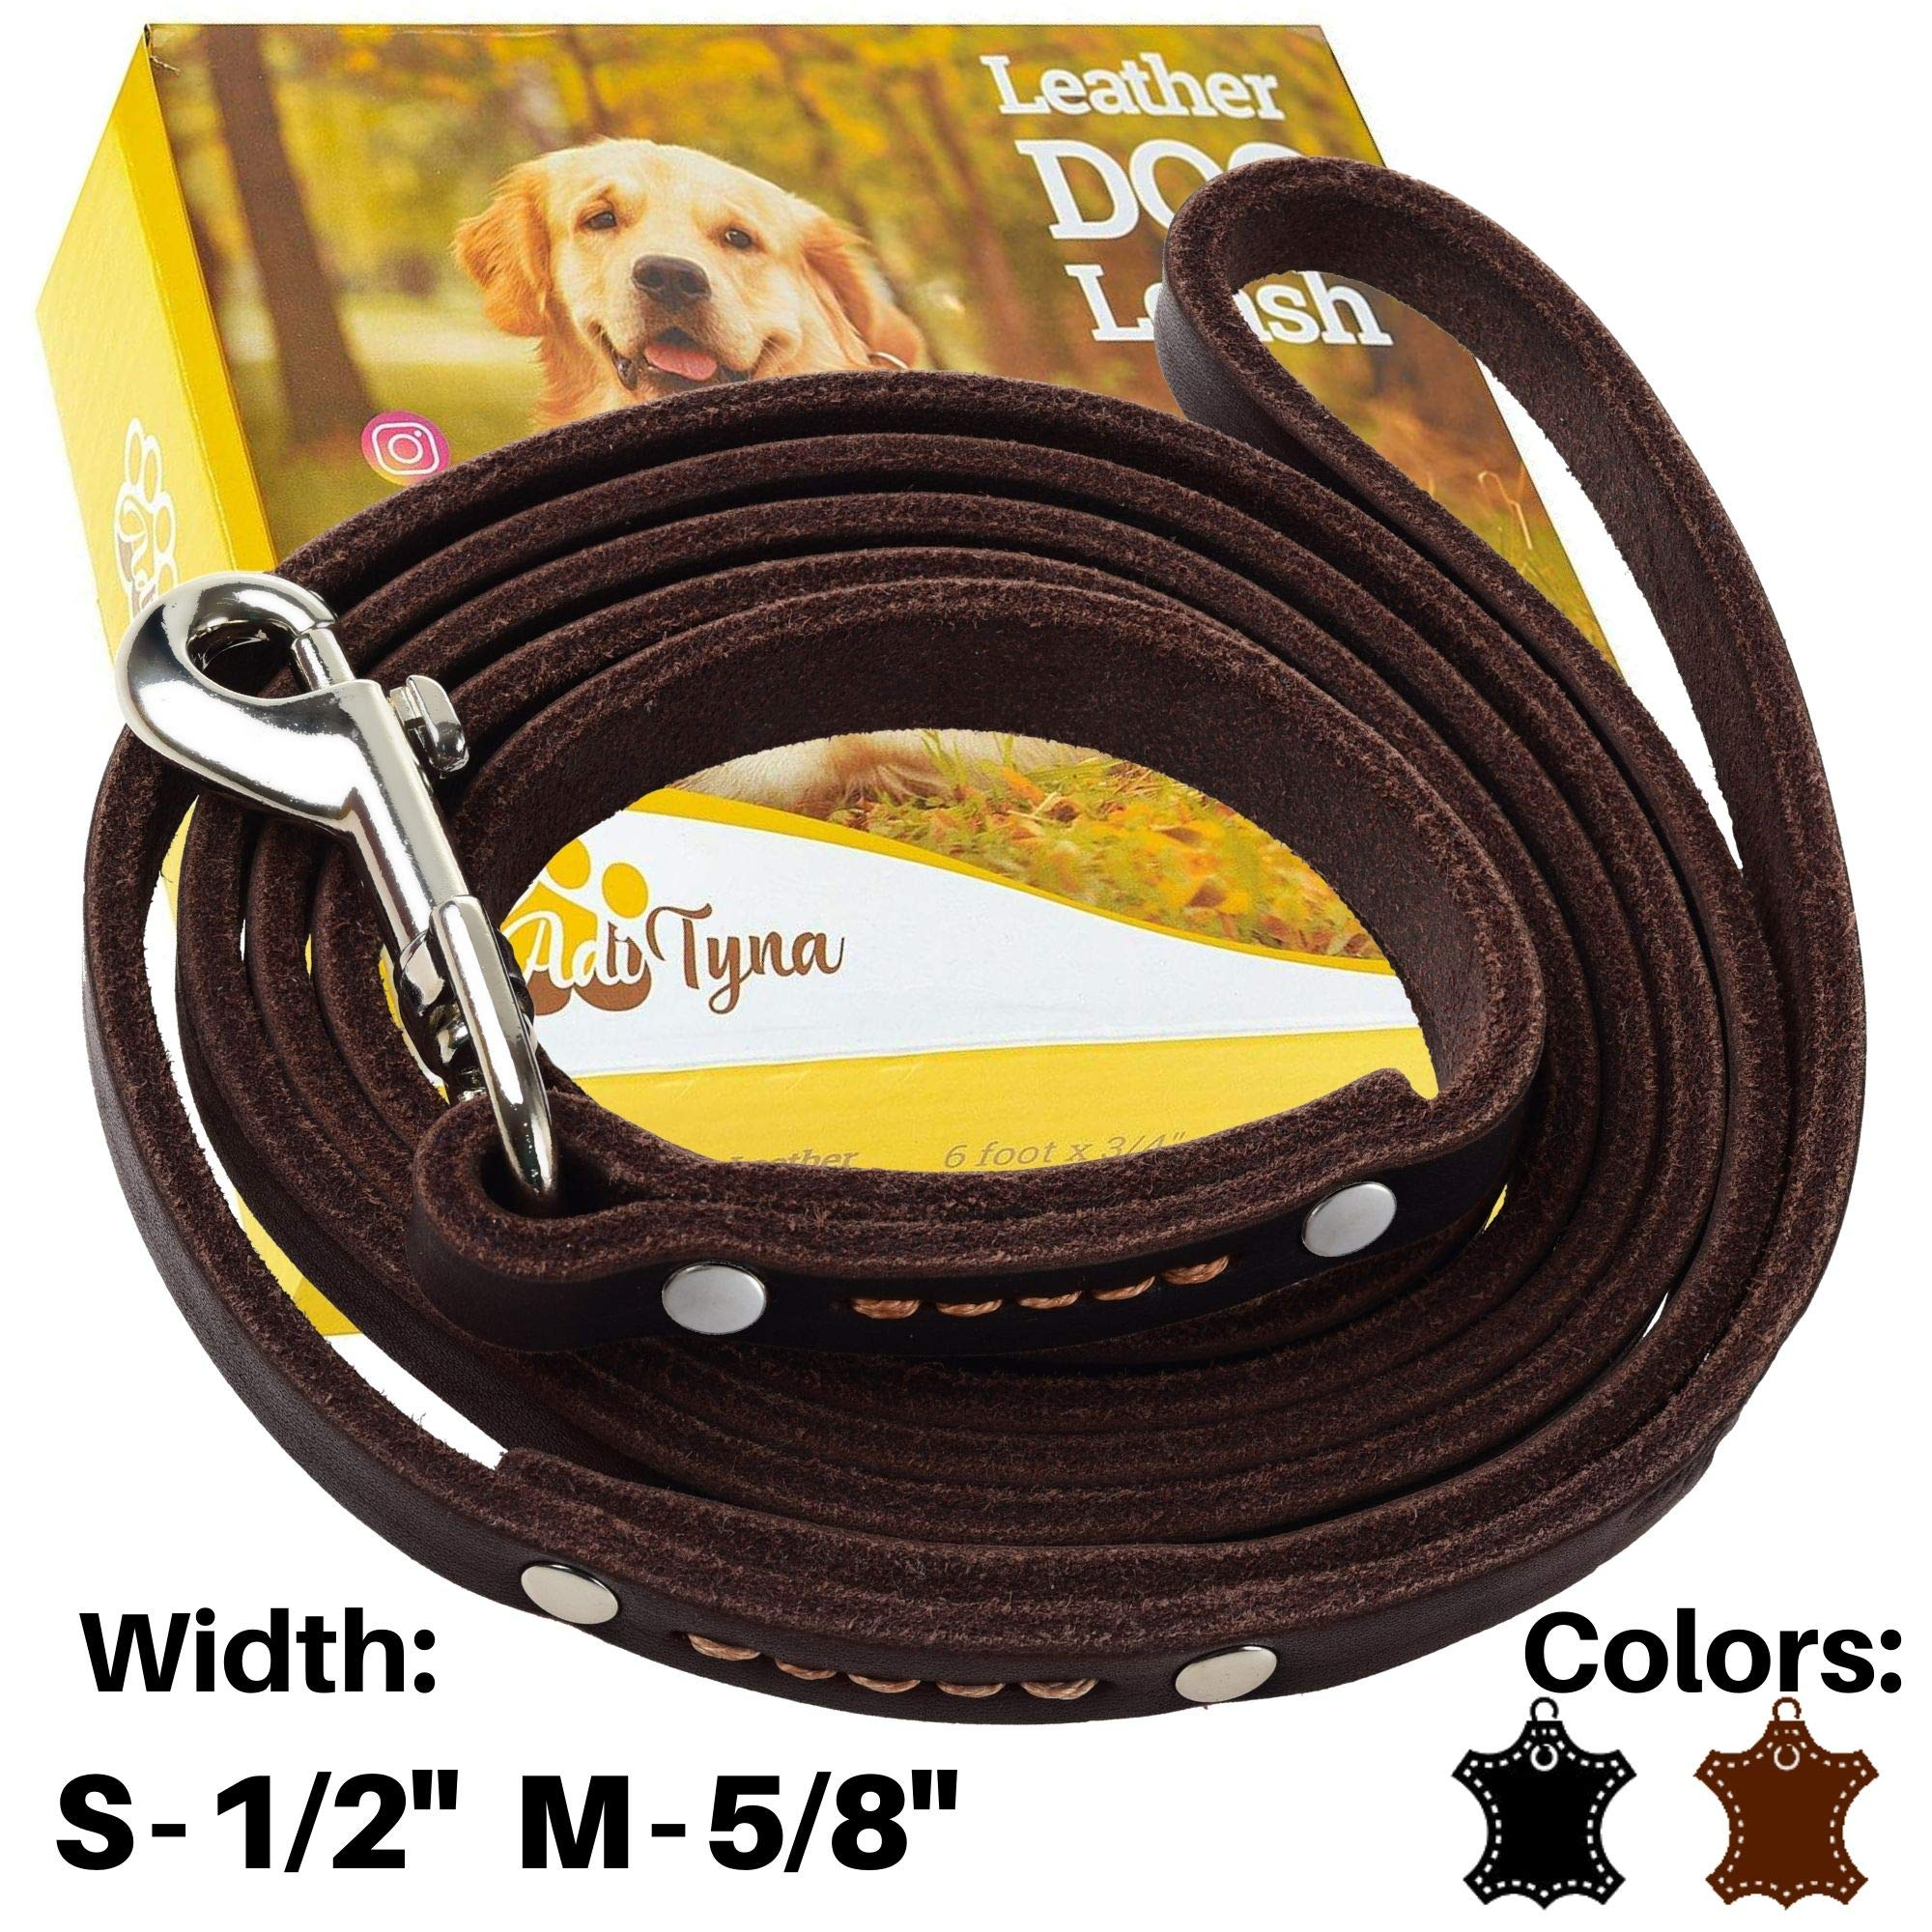 ADITYNA - Leather Dog Leash 6 Foot x 1/2 inch - Strong and Soft Leather Leash for Small or Medium Dogs - Heavy Duty Training Leash (Brown) by ADITYNA